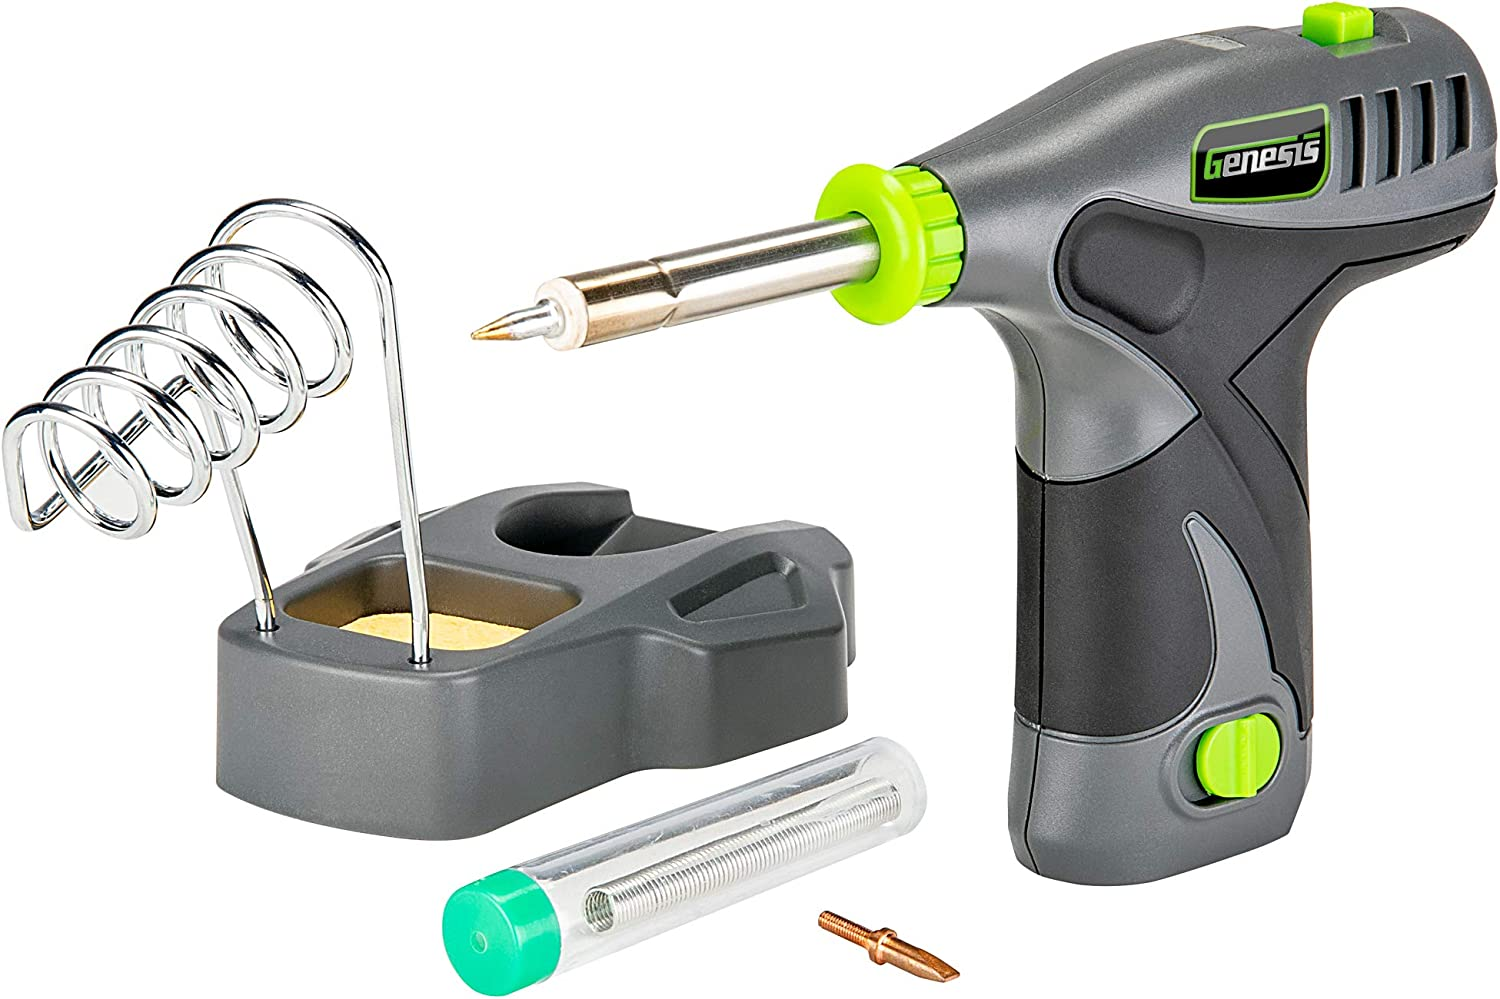 Genesis GLSI08B 8V Lithium-Ion Cordless Rapid Heat-Up Soldering Iron with Iron Holder, Solder Wire, Fine Tip, Chisel Tip, Removable Battery, and Charger